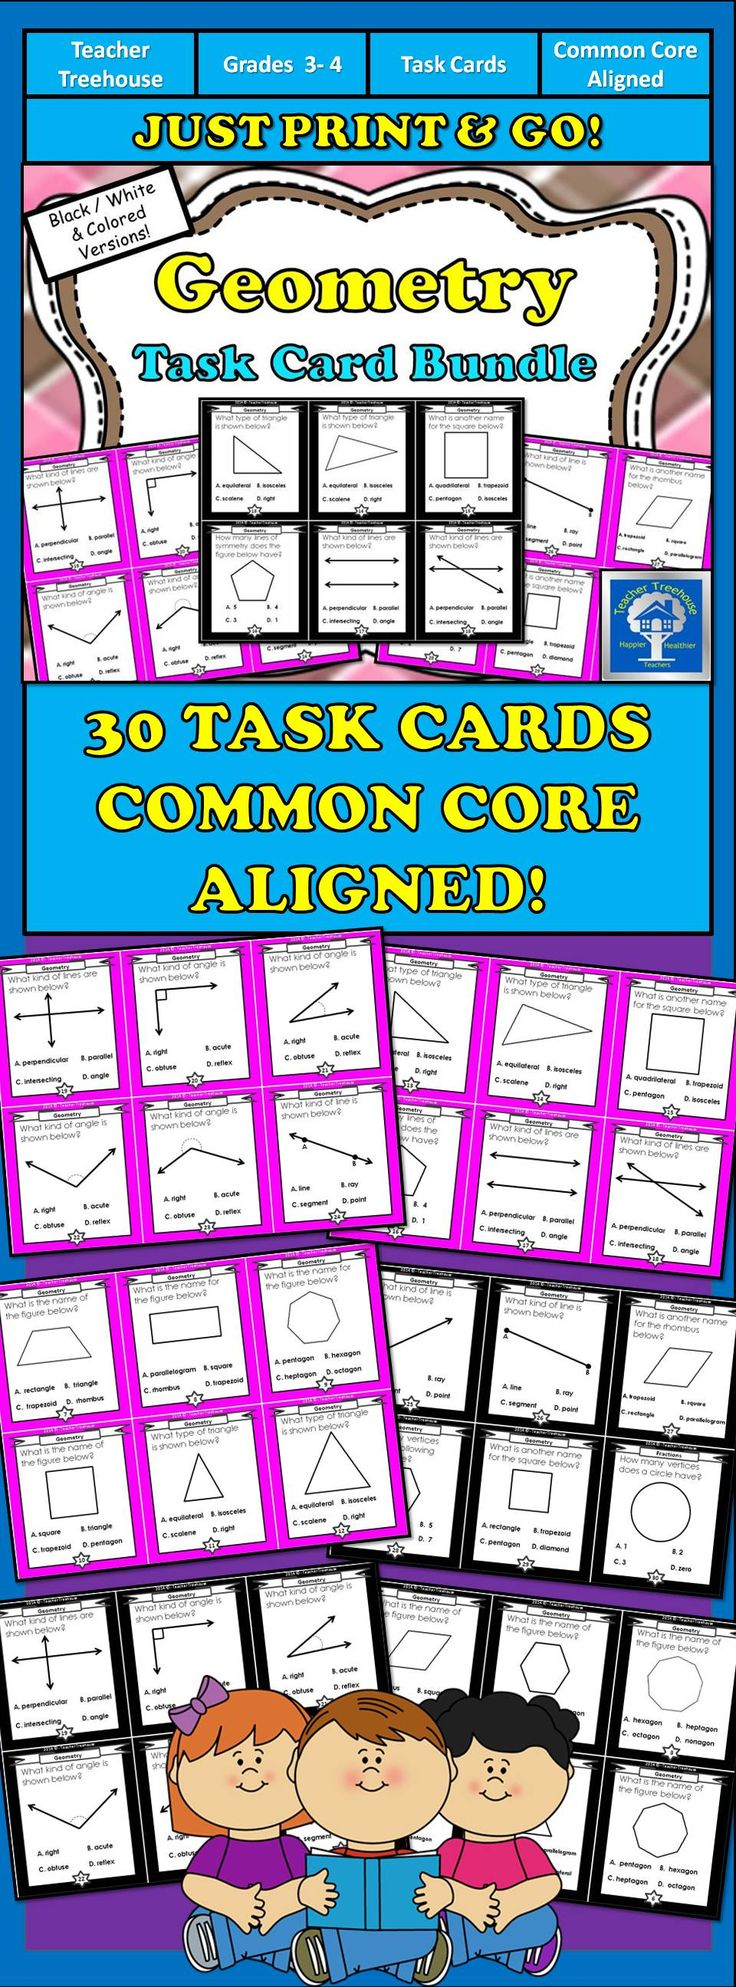 This set of task cards is designed to help your students master intermediate geometry skills and concepts! Students will practice: - Naming shapes and identifying alternative names to common quadrilaterals - Identifying types of triangles (right, equilateral, isosceles and scalene) - Identifying types of lines (parallel, perpendicular, intersecting, ray, line, segment, points) - Identifying types of angles (right, acute, obtuse, reflex) - etc.